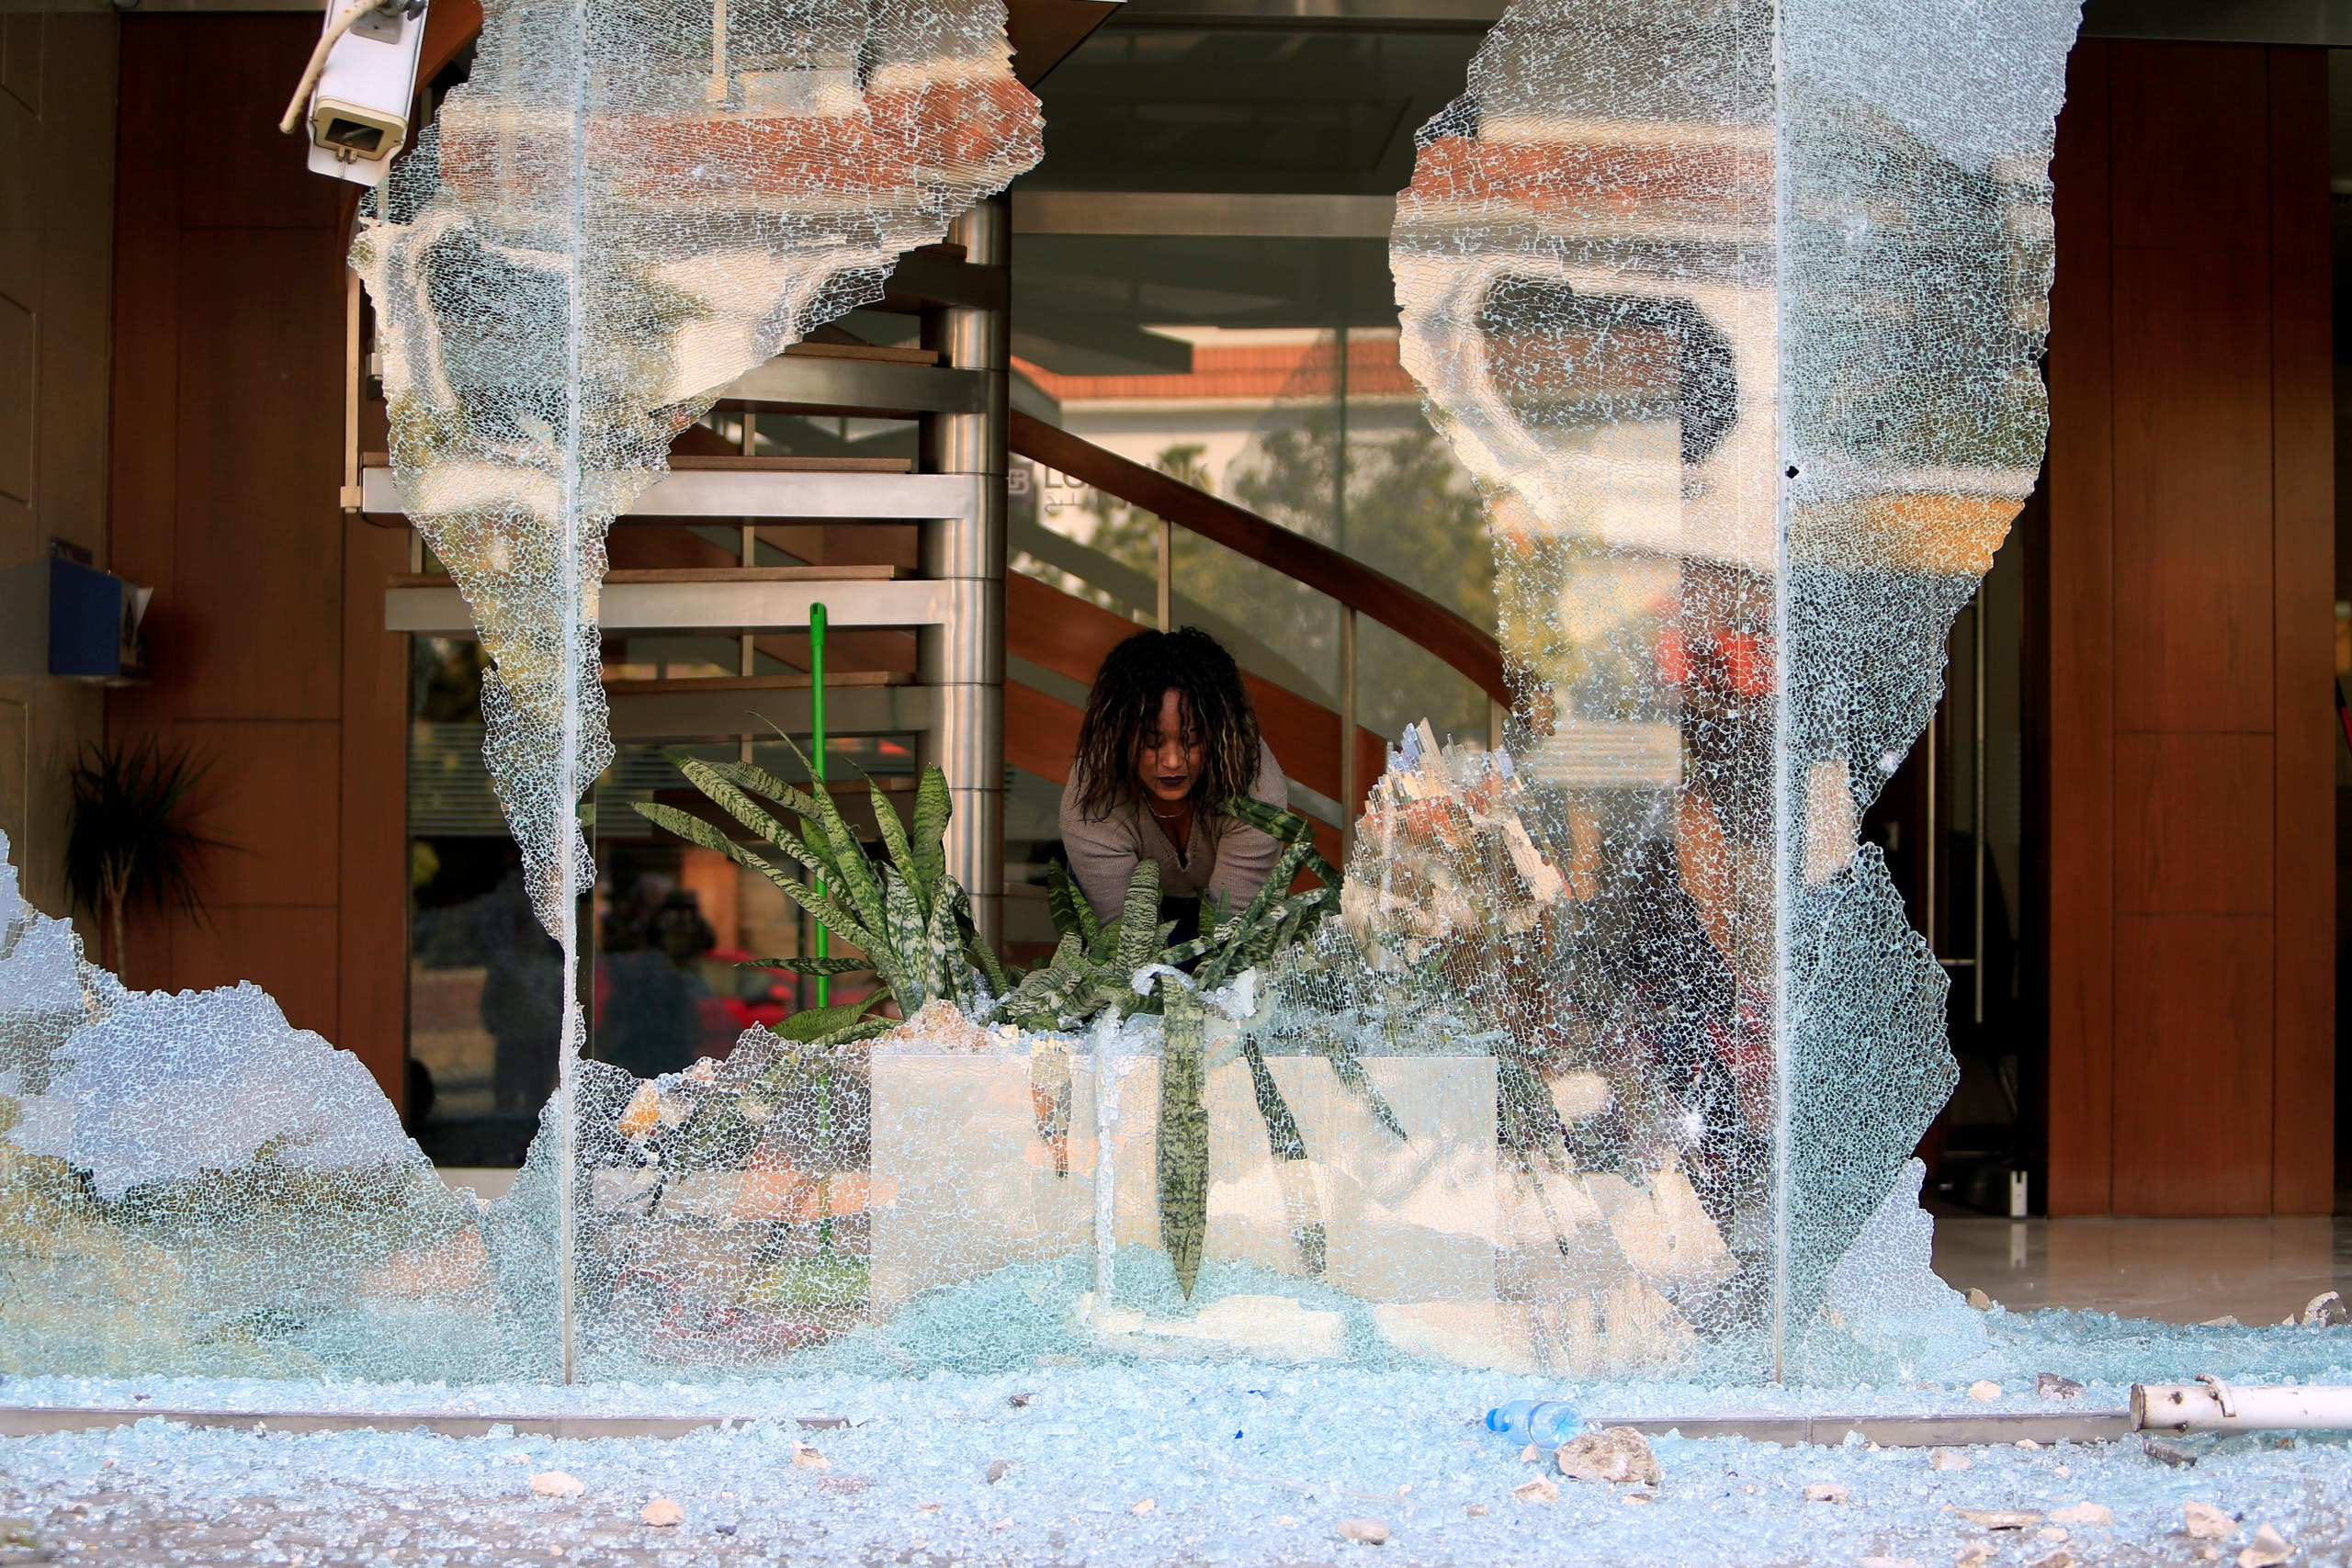 A worker cleans up broken glass from a bank facade after overnight protests against growing economic hardship in Sidon, Lebanon April 29, 2020. (Reuters)